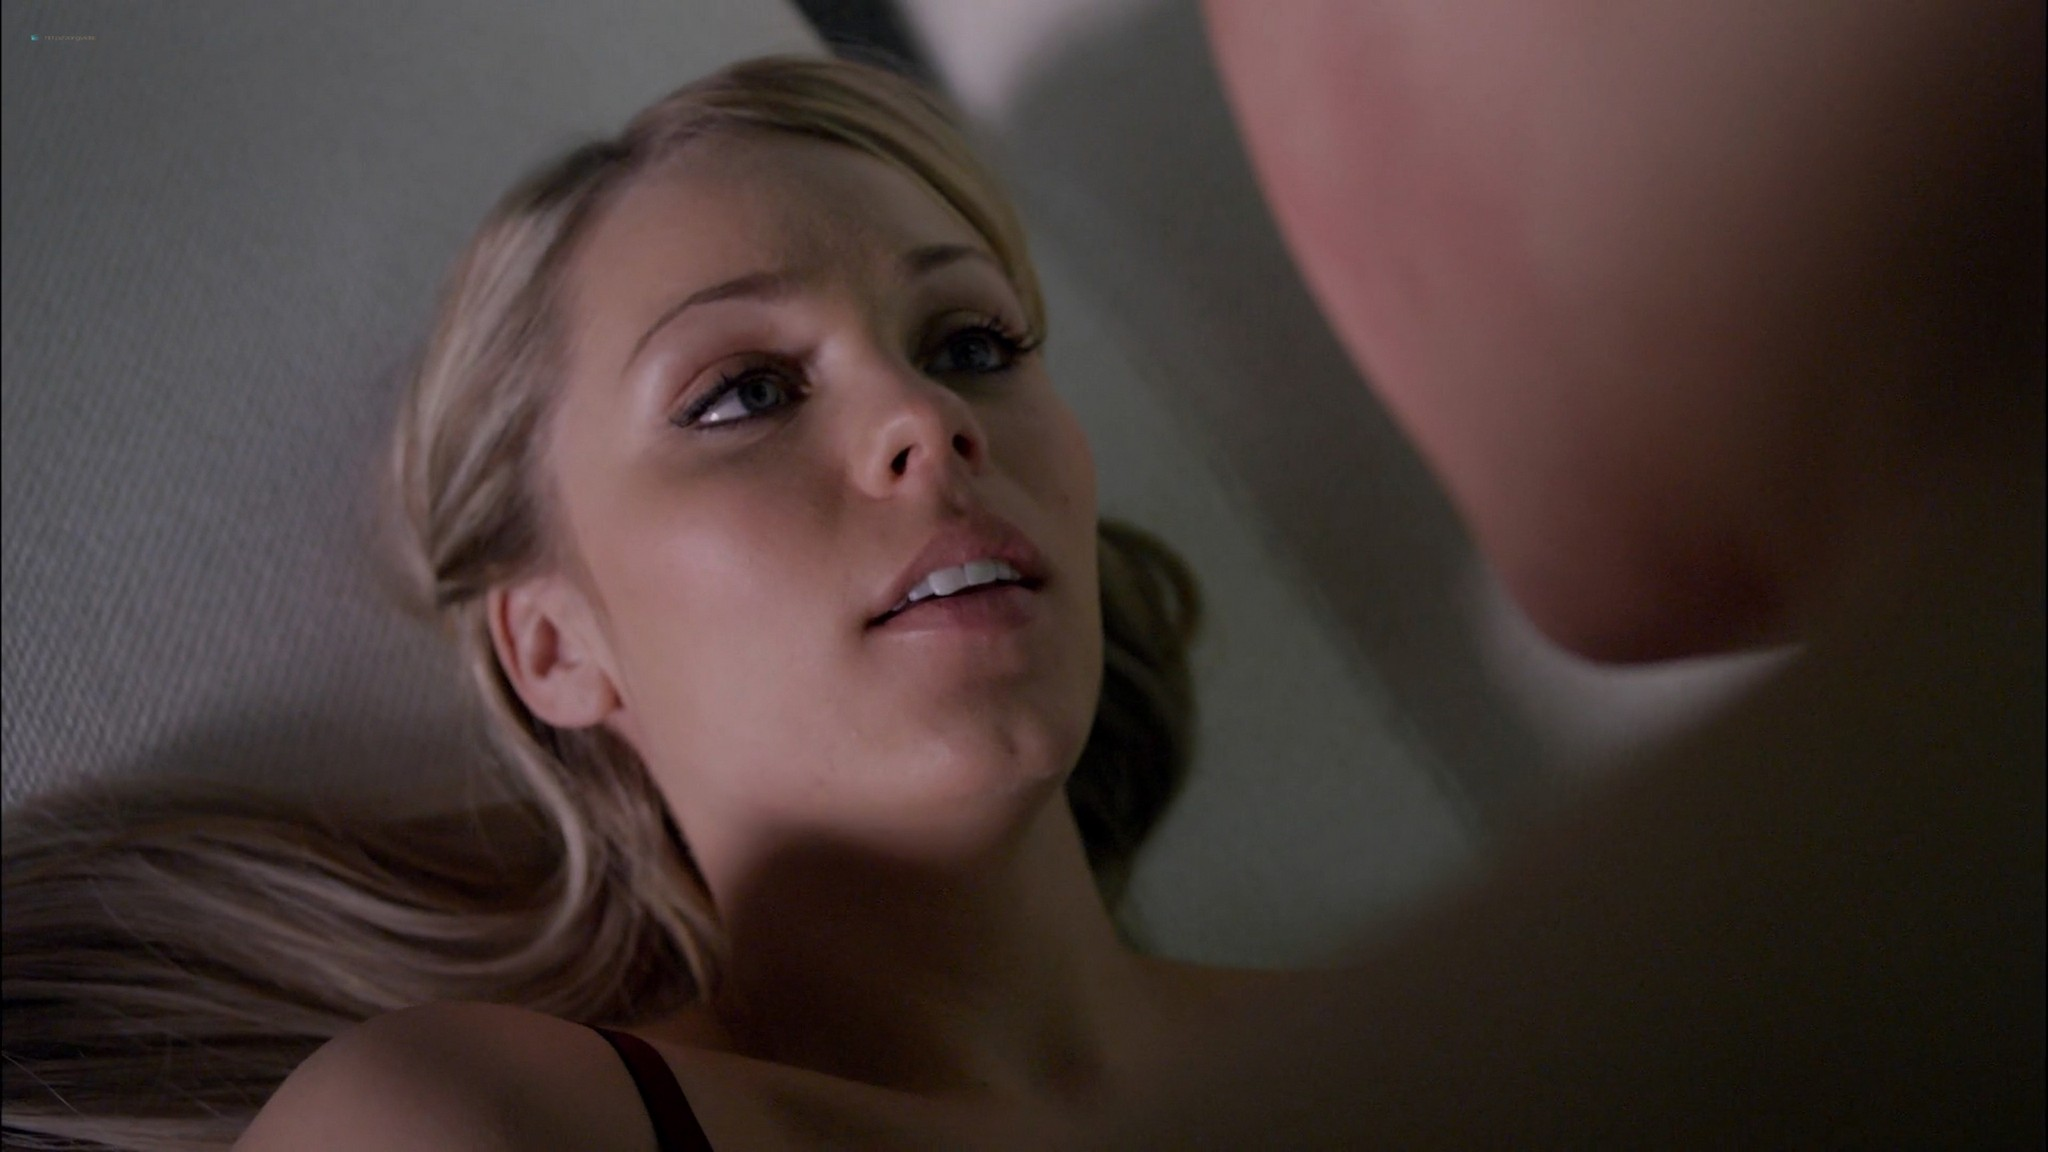 Laura Vandervoort hot and sex Morena Baccarin Elizabeth Mitchell sexy V 2009 s1e7 12 1080p BluRay 13